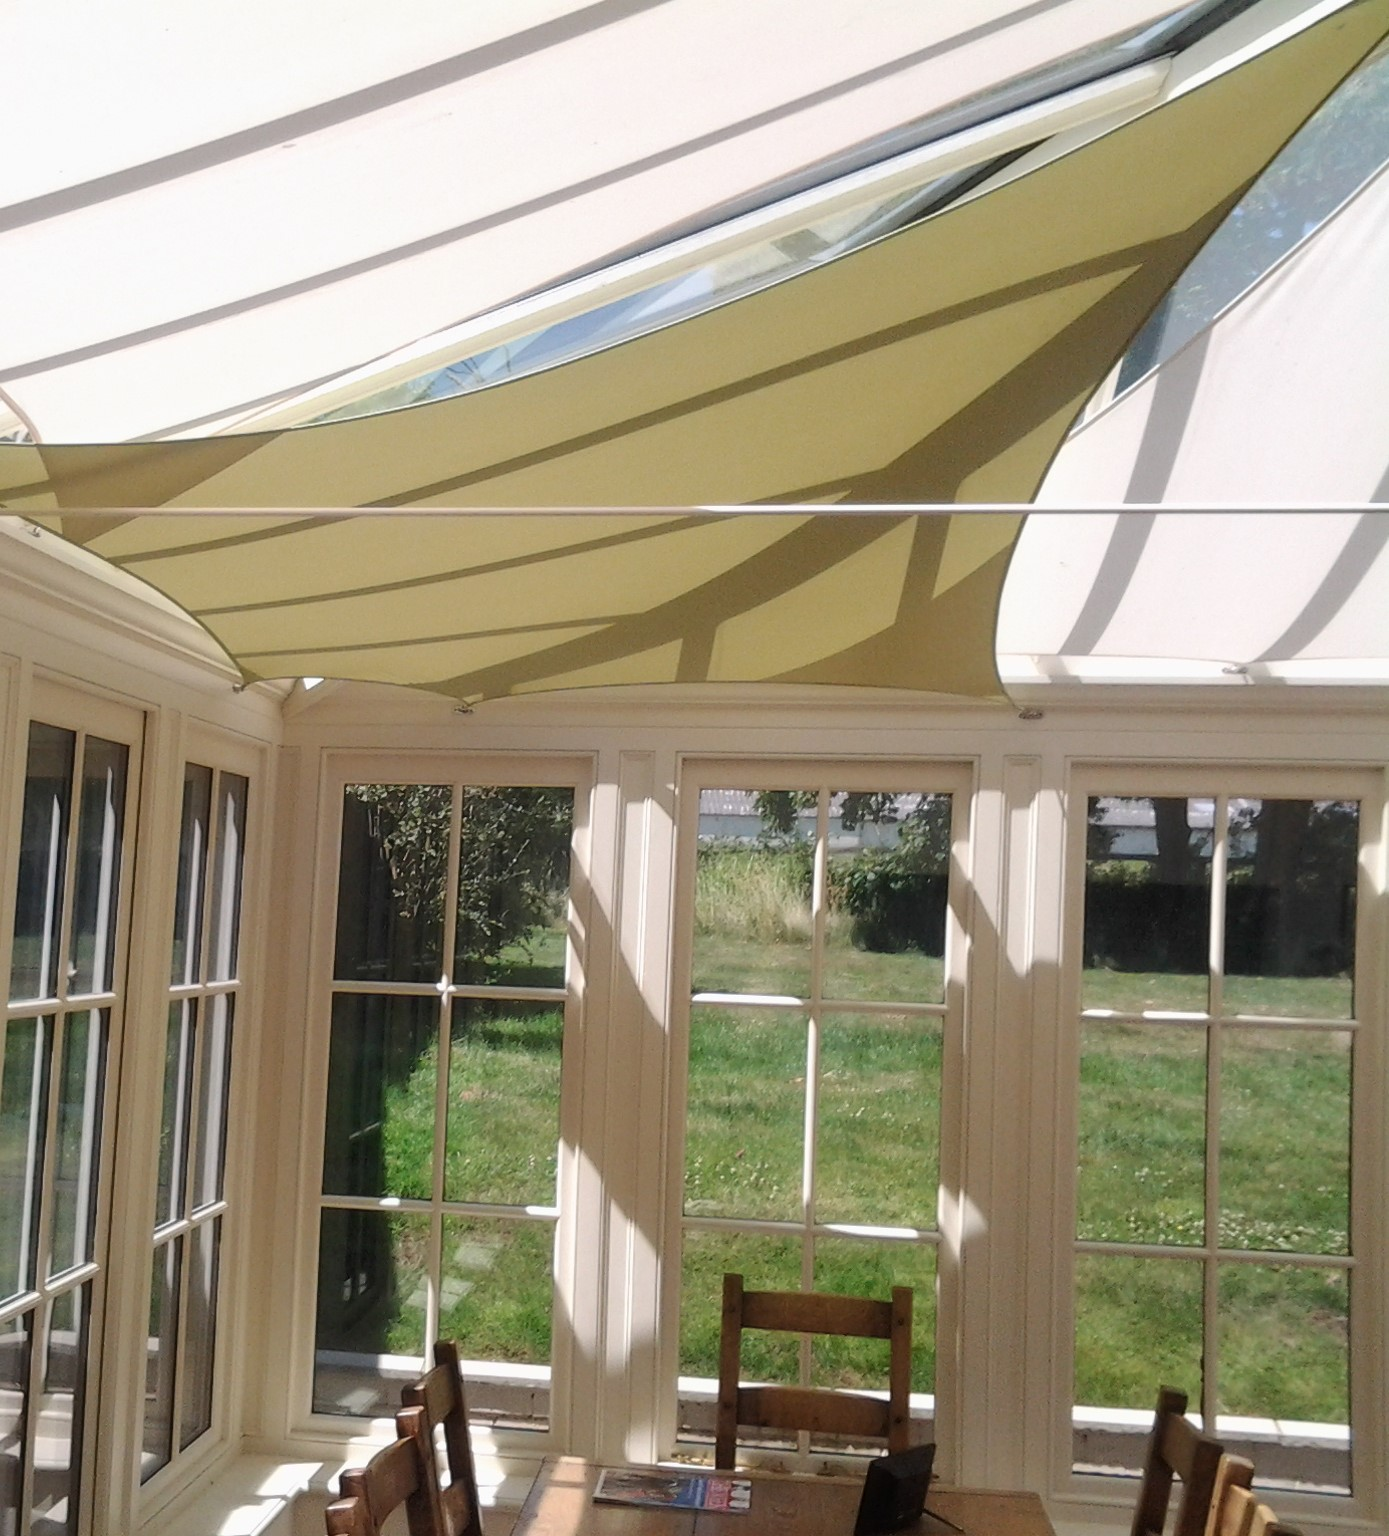 all ca awnings on awning shade theawningfactory save patio